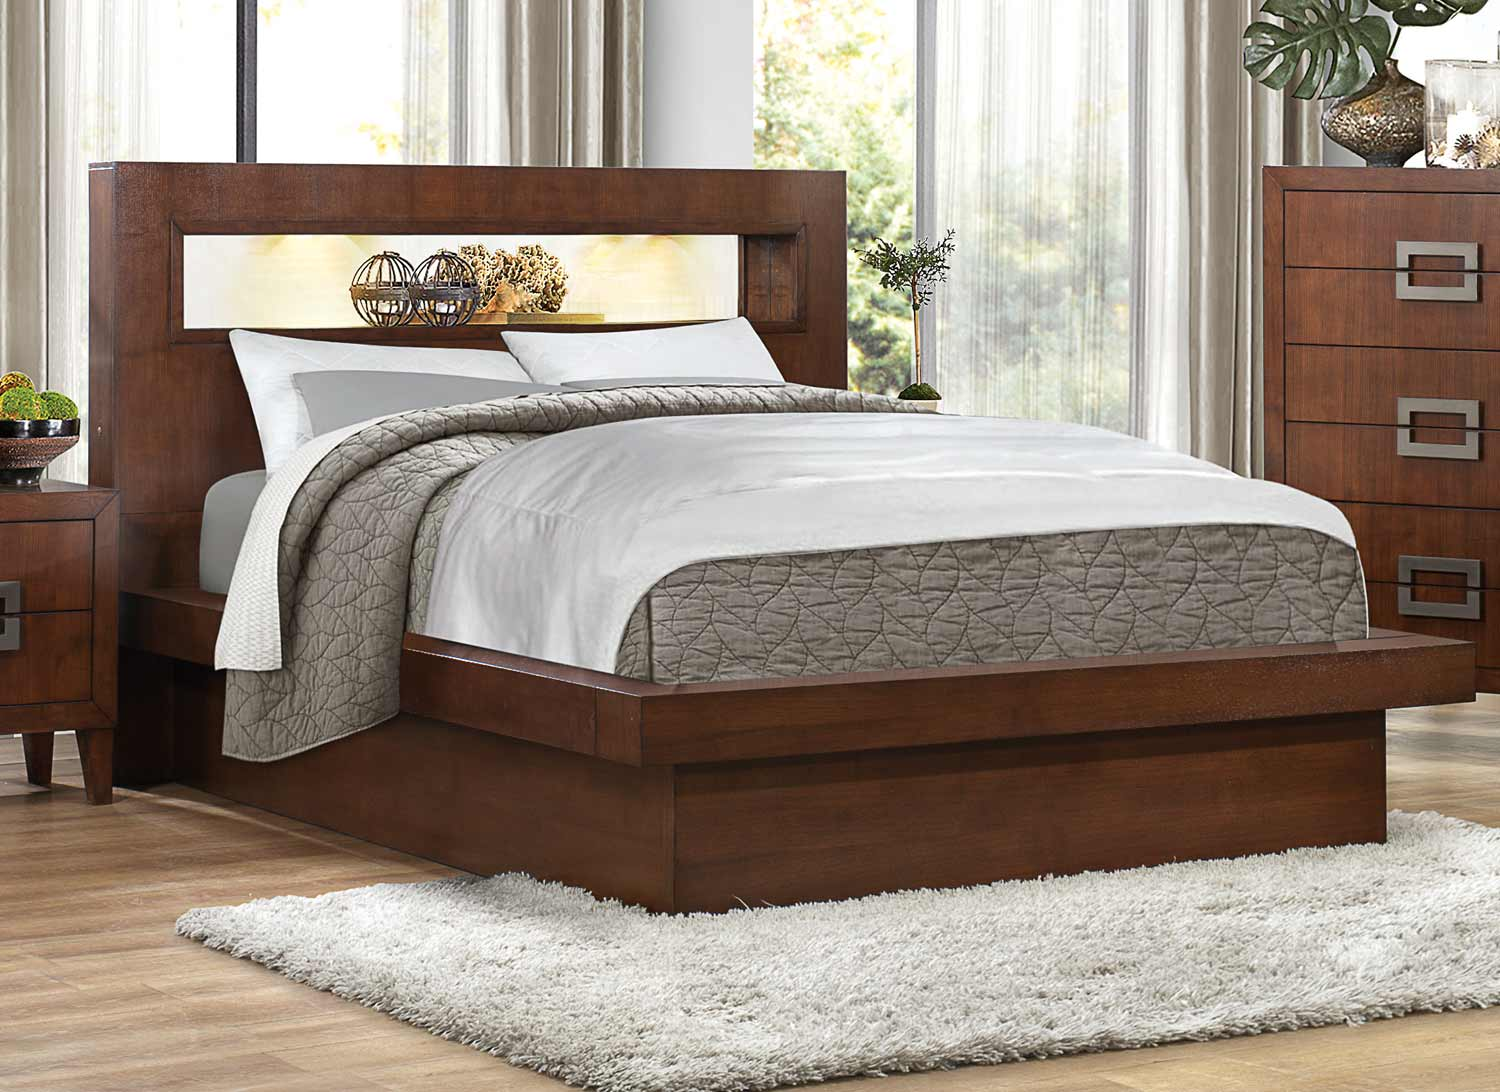 Homelegance Arata Platform Bed - Cappucino Brown